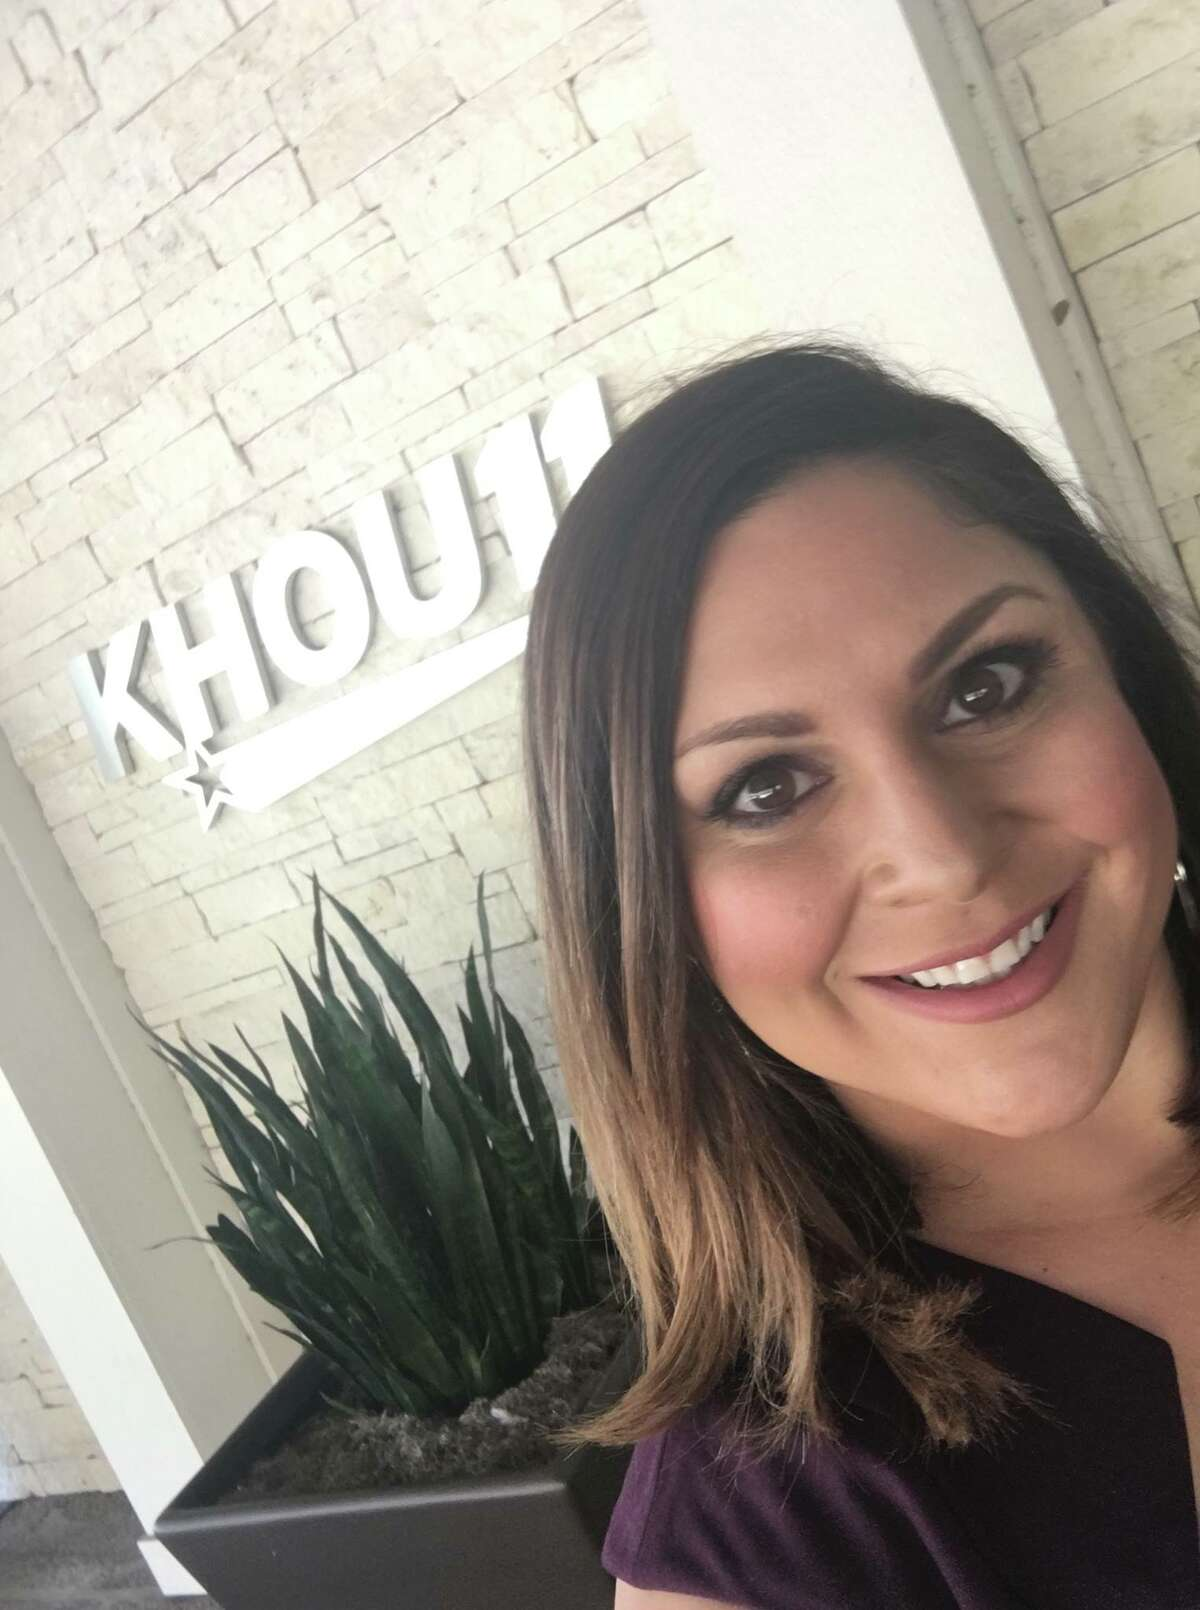 TV faces that just arrived to town Melissa Correa joined KHOU-TV as a reporter in late 2015. Correa was a reporter and anchor at Rio Grande Valley's KRGV-TV. Prior to that, she was a reporter for Richmond's WWBT-TV in Virginia.